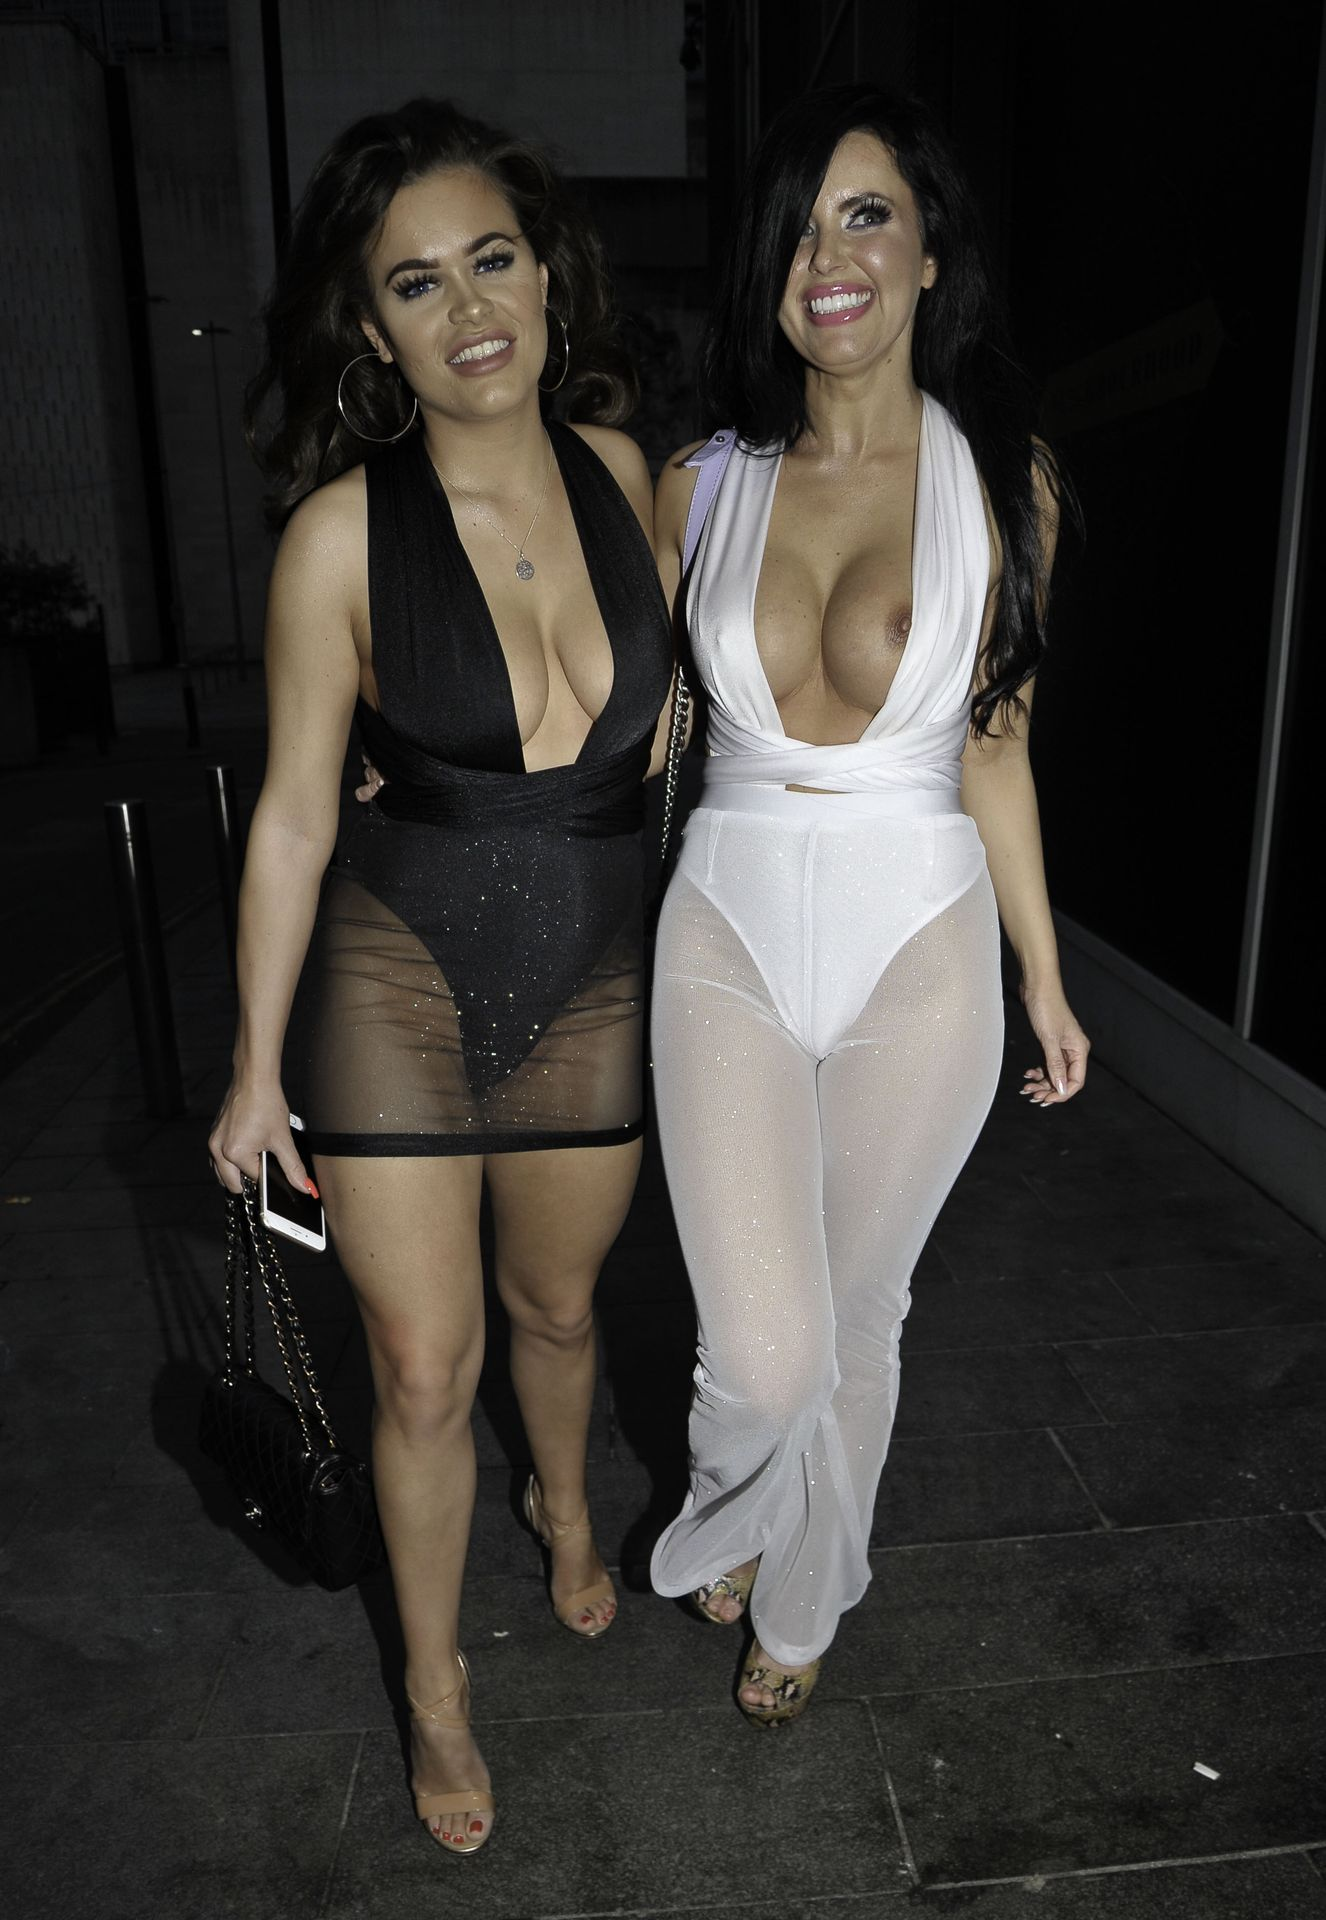 Rhianne Saxby & Sarah Longbottom Look Hot In Manchester 0014